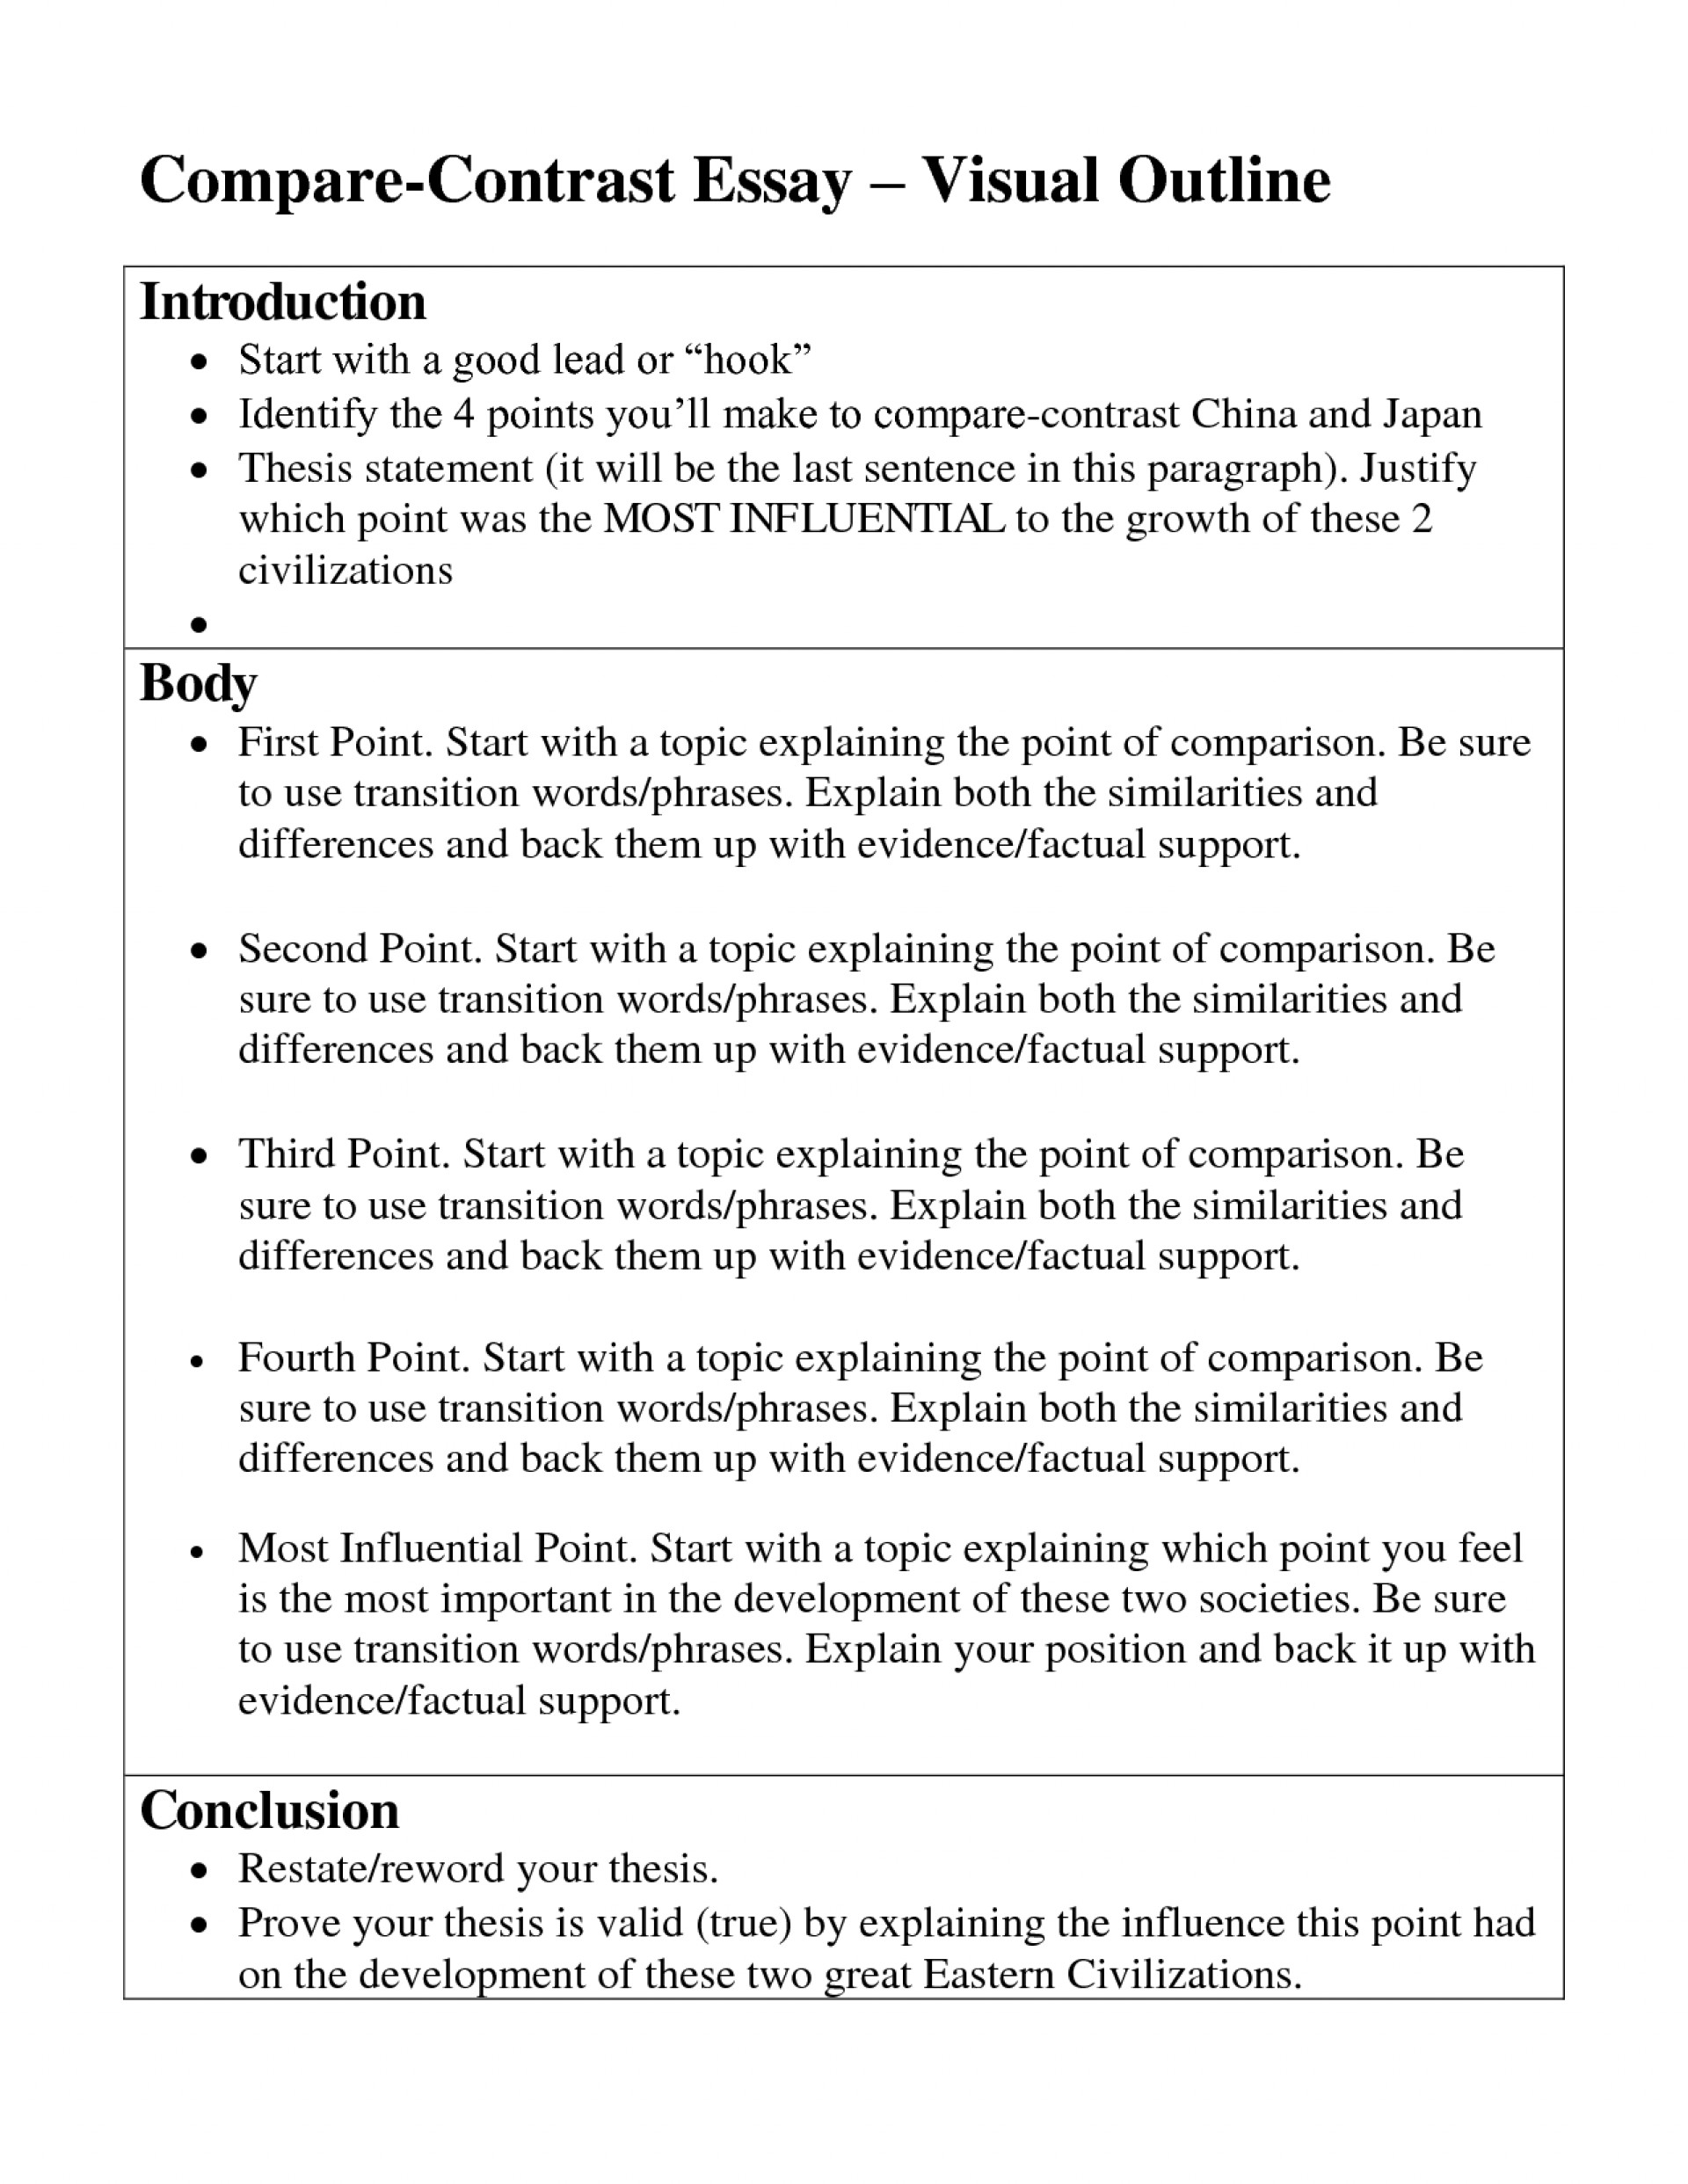 005 How To Write Compare And Contrast Essay Outstanding A Format Block Conclusion Paragraph For Examples 1920